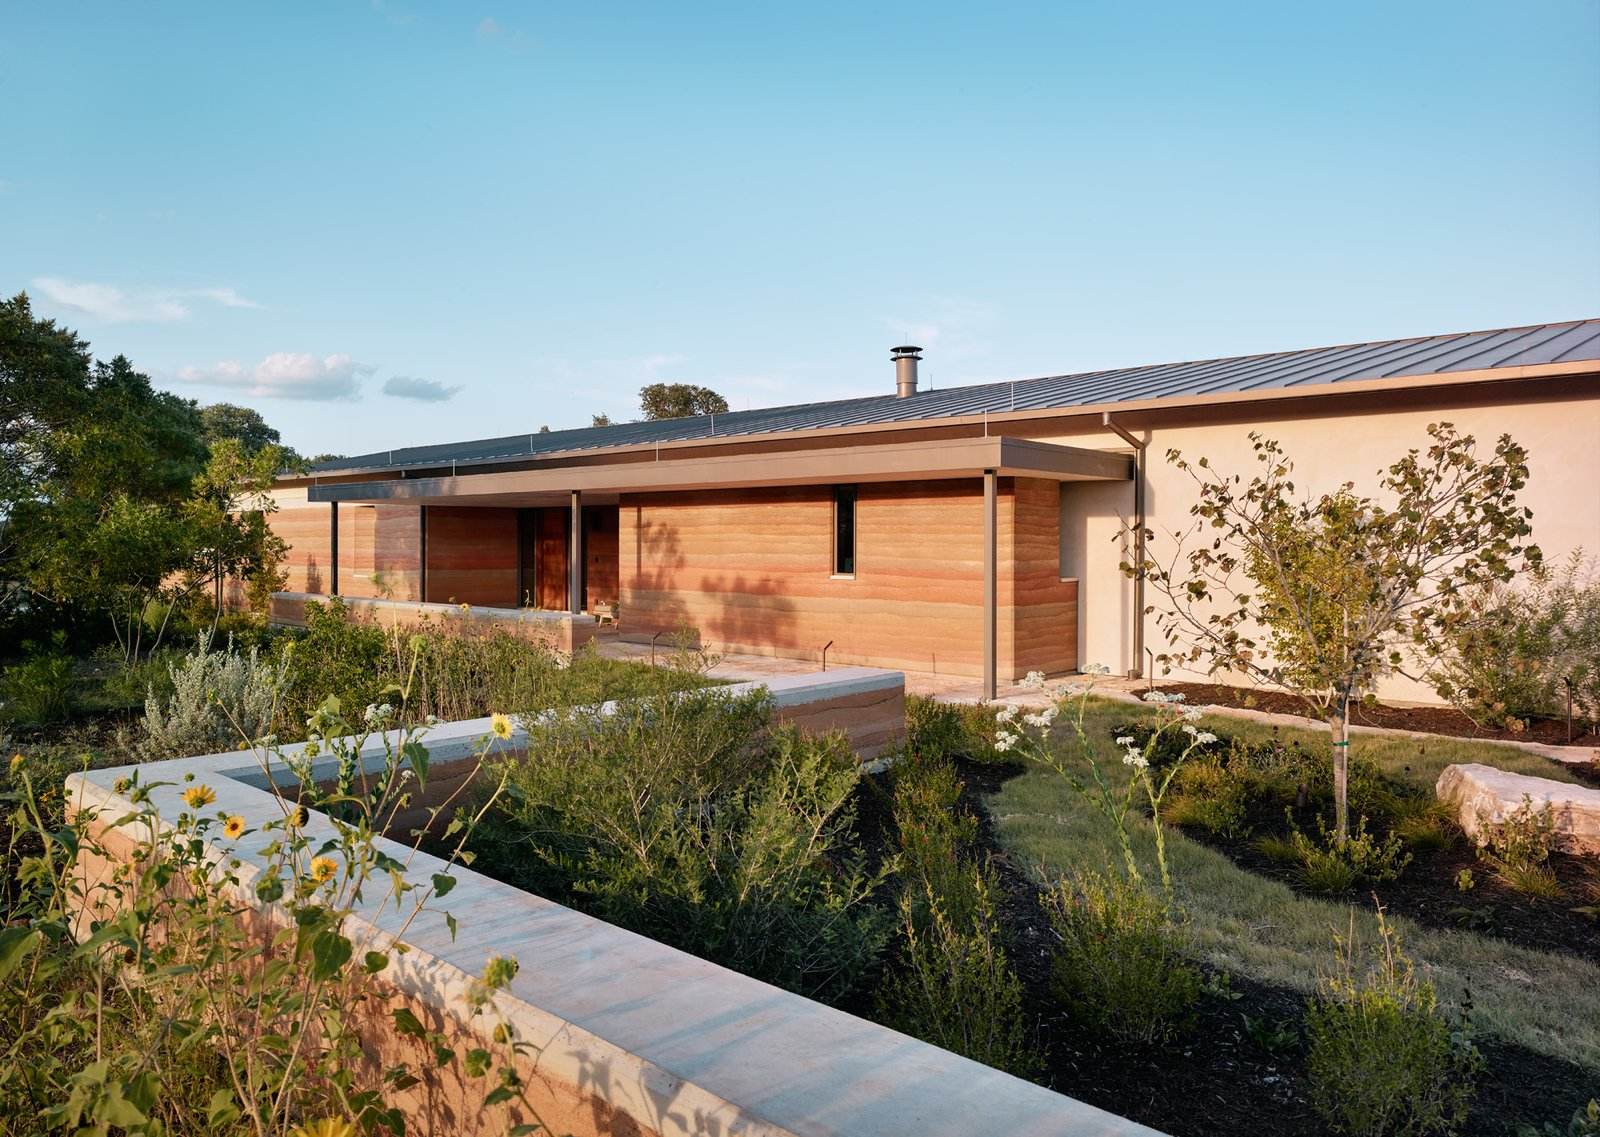 Jobe Corral Architects River Ranch house exterior.